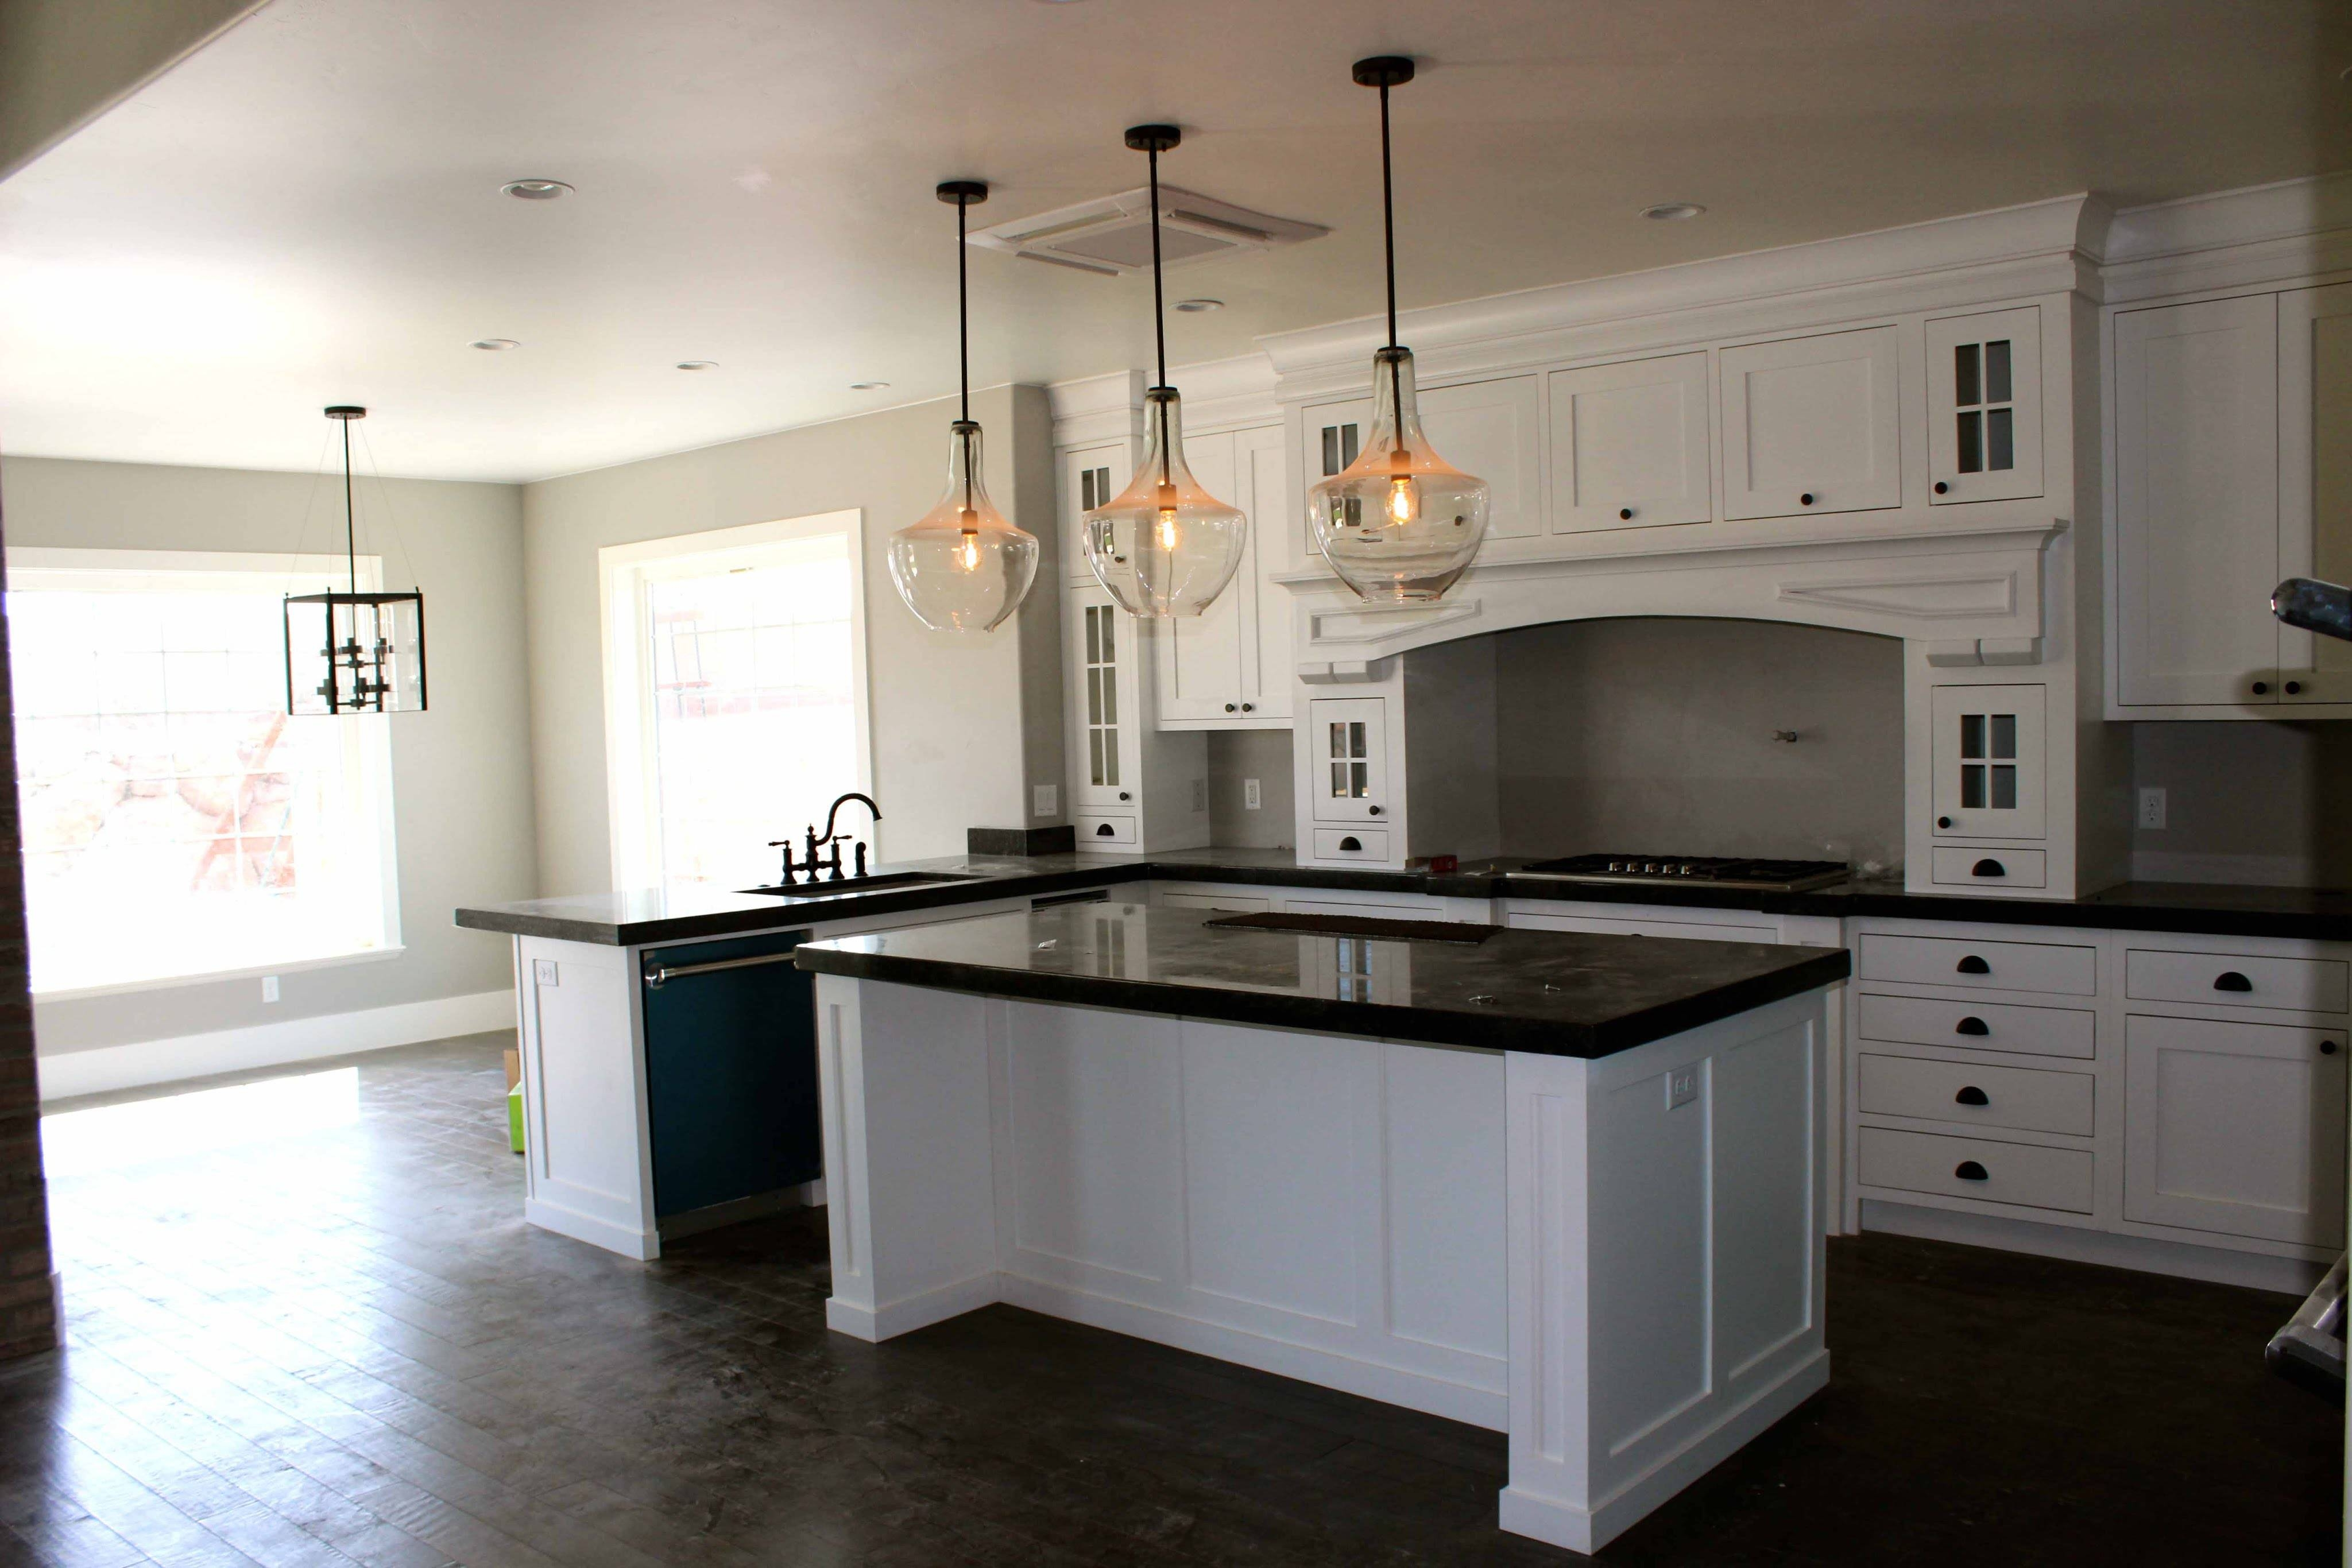 Photos Hgtv Kitchen Island With Stainless Steel Pendant Lights With Stainless Steel Kitchen Pendant Lights (View 11 of 15)